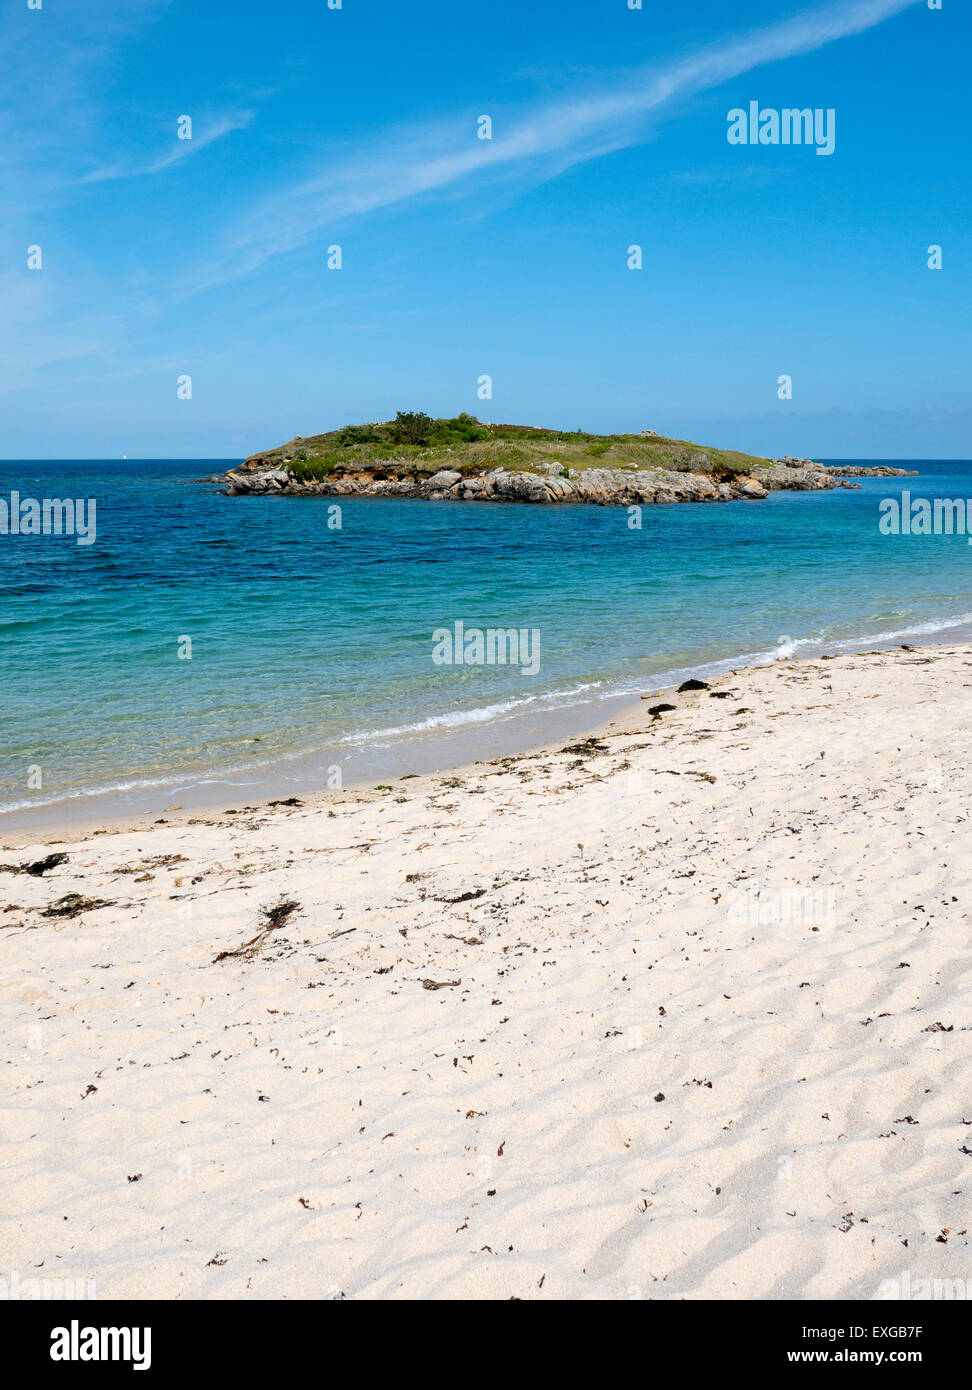 Pelistry Bay beach and Toll's island, St. Mary's, Isles of Scilly, Cornwall England. Stock Photo